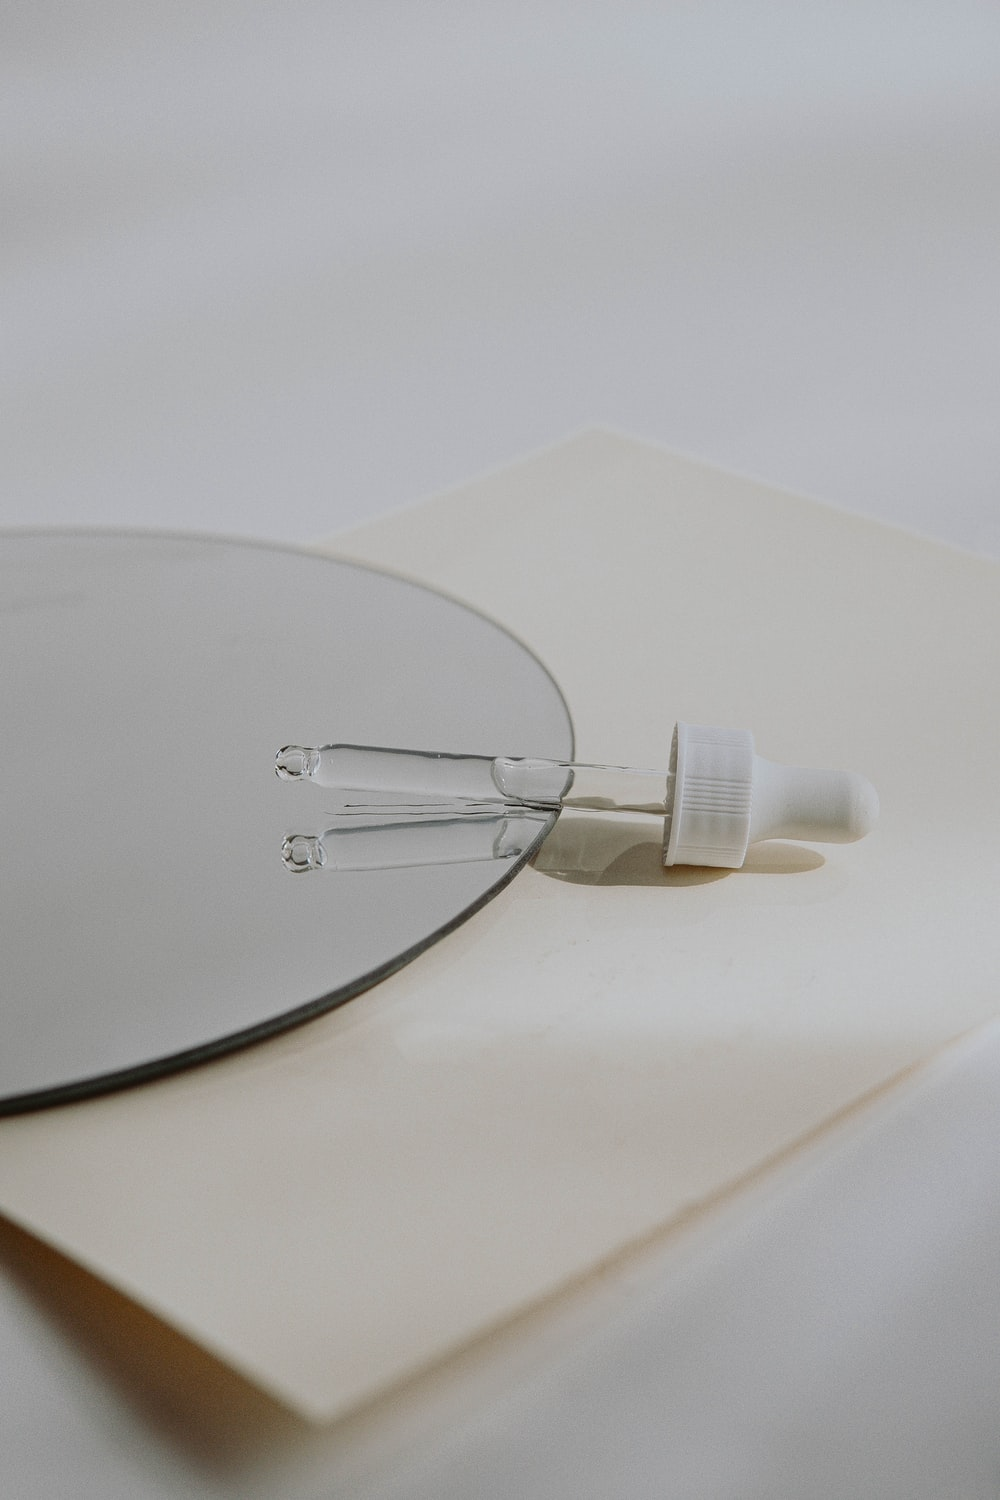 white usb cable on white table